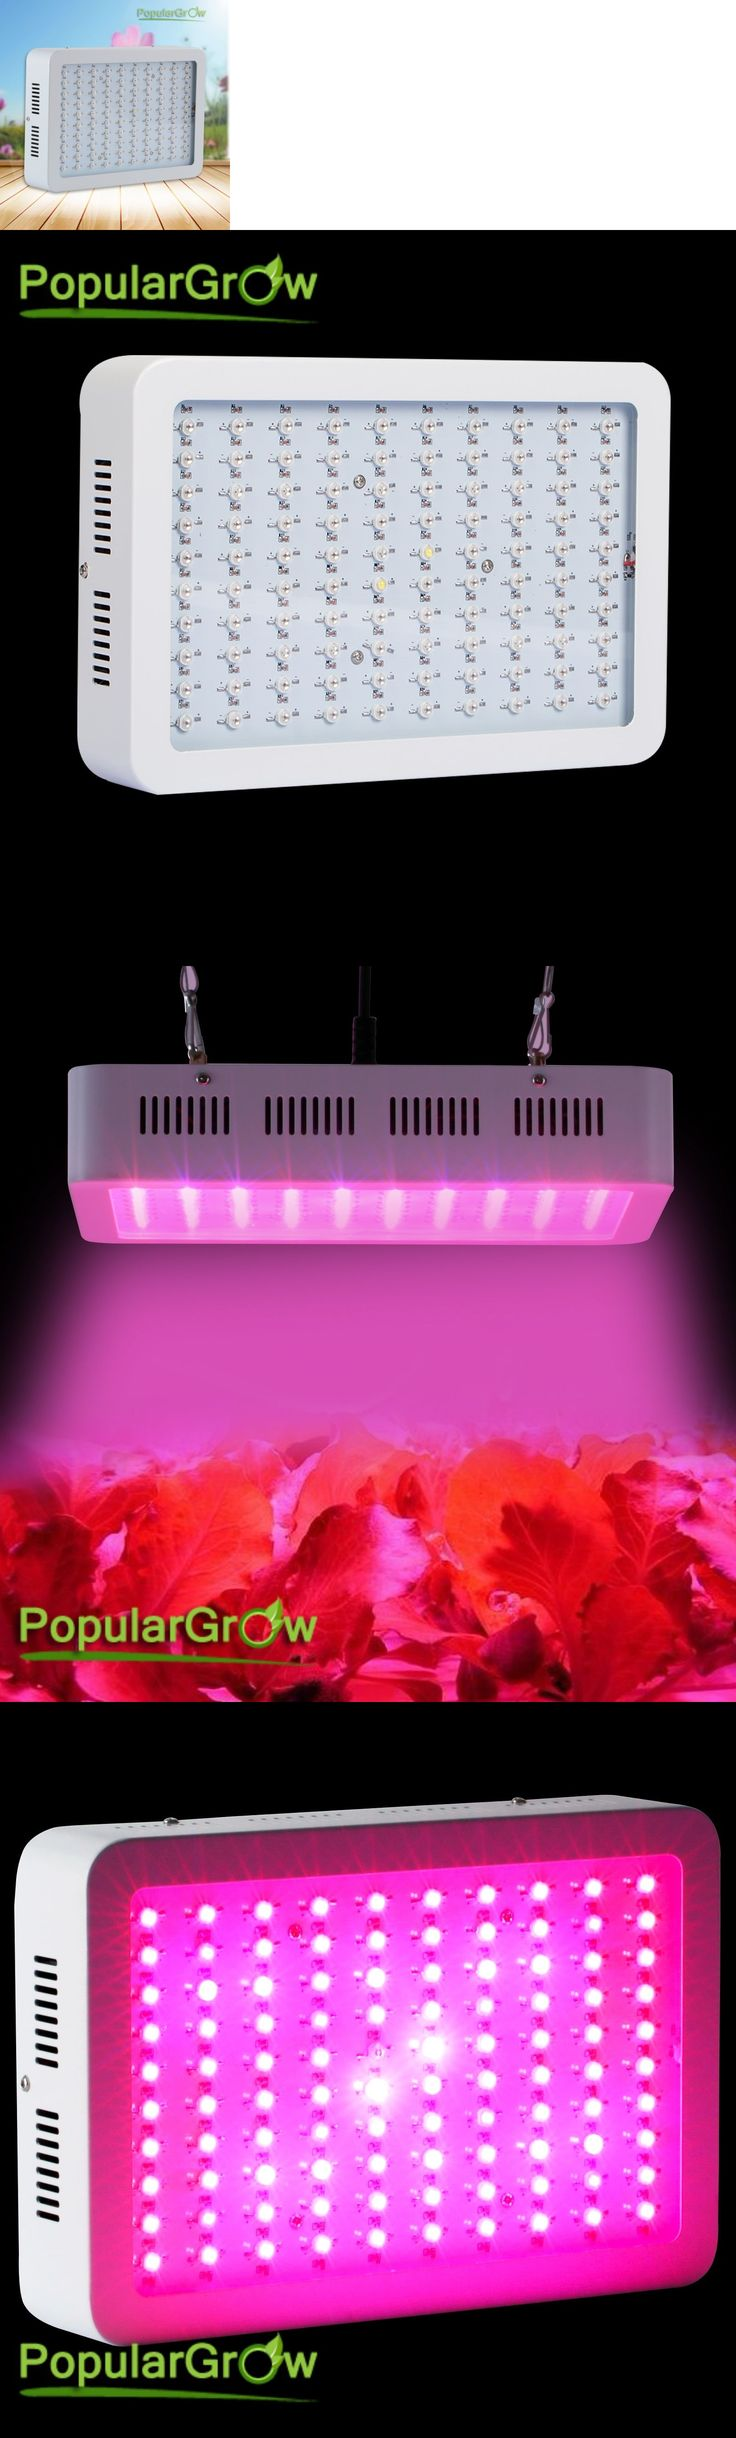 Grow Light Bulbs 178988: Populargrow 300W Led Grow Lights 9 Bands Commercial Vegandplant Hydroponics System -> BUY IT NOW ONLY: $65 on eBay!